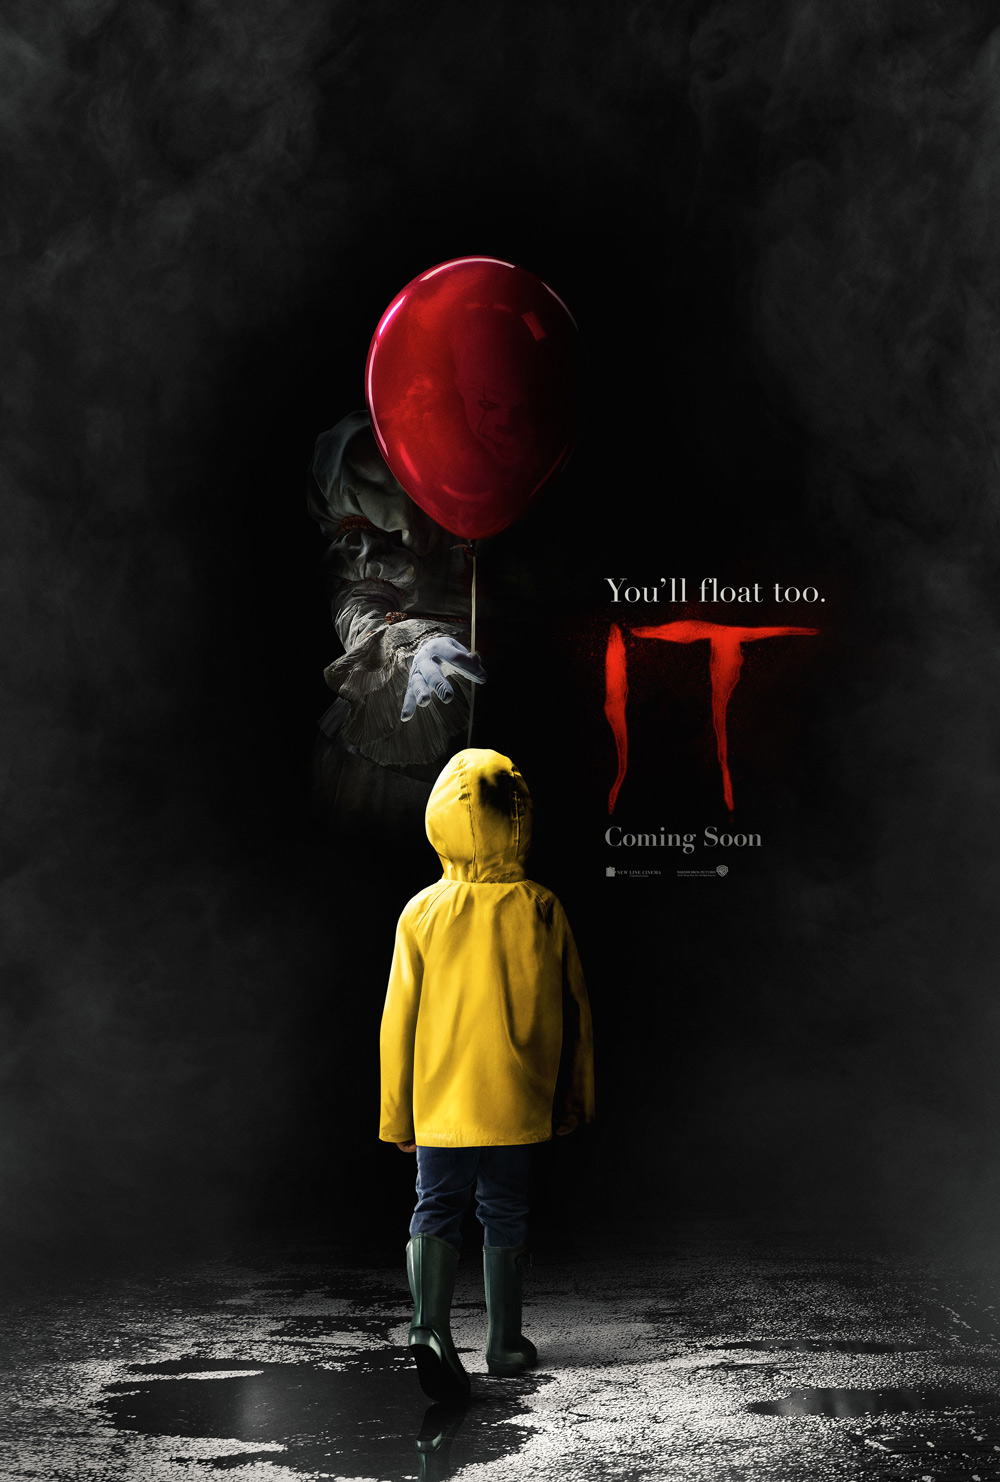 New IT Poster Floats onto the Web Ahead of Tomorrow's Trailer